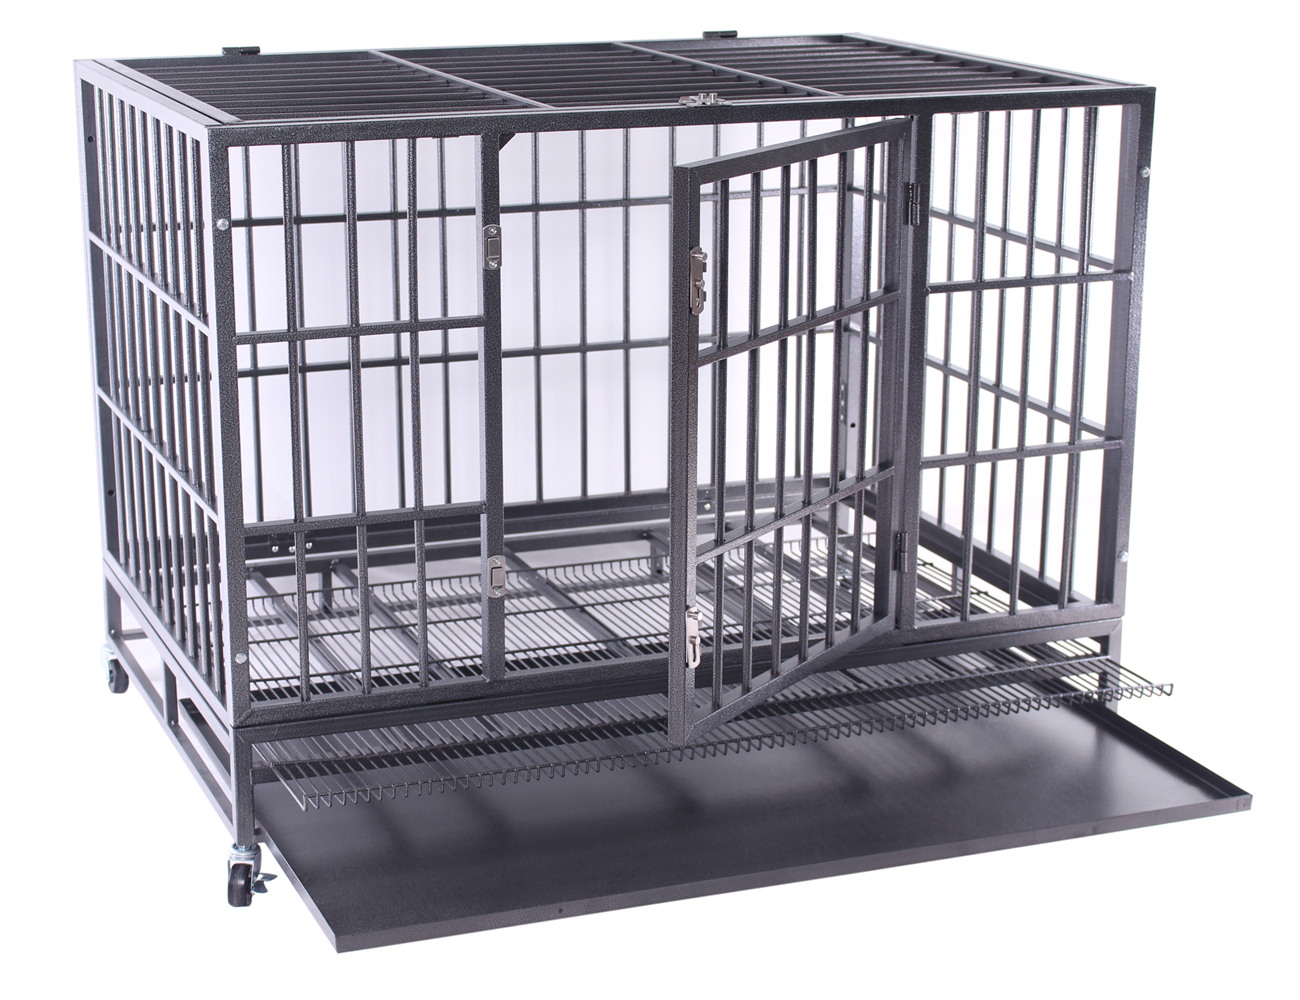 haige pet heavy duty dog crate extra large metal dog kennel cage with